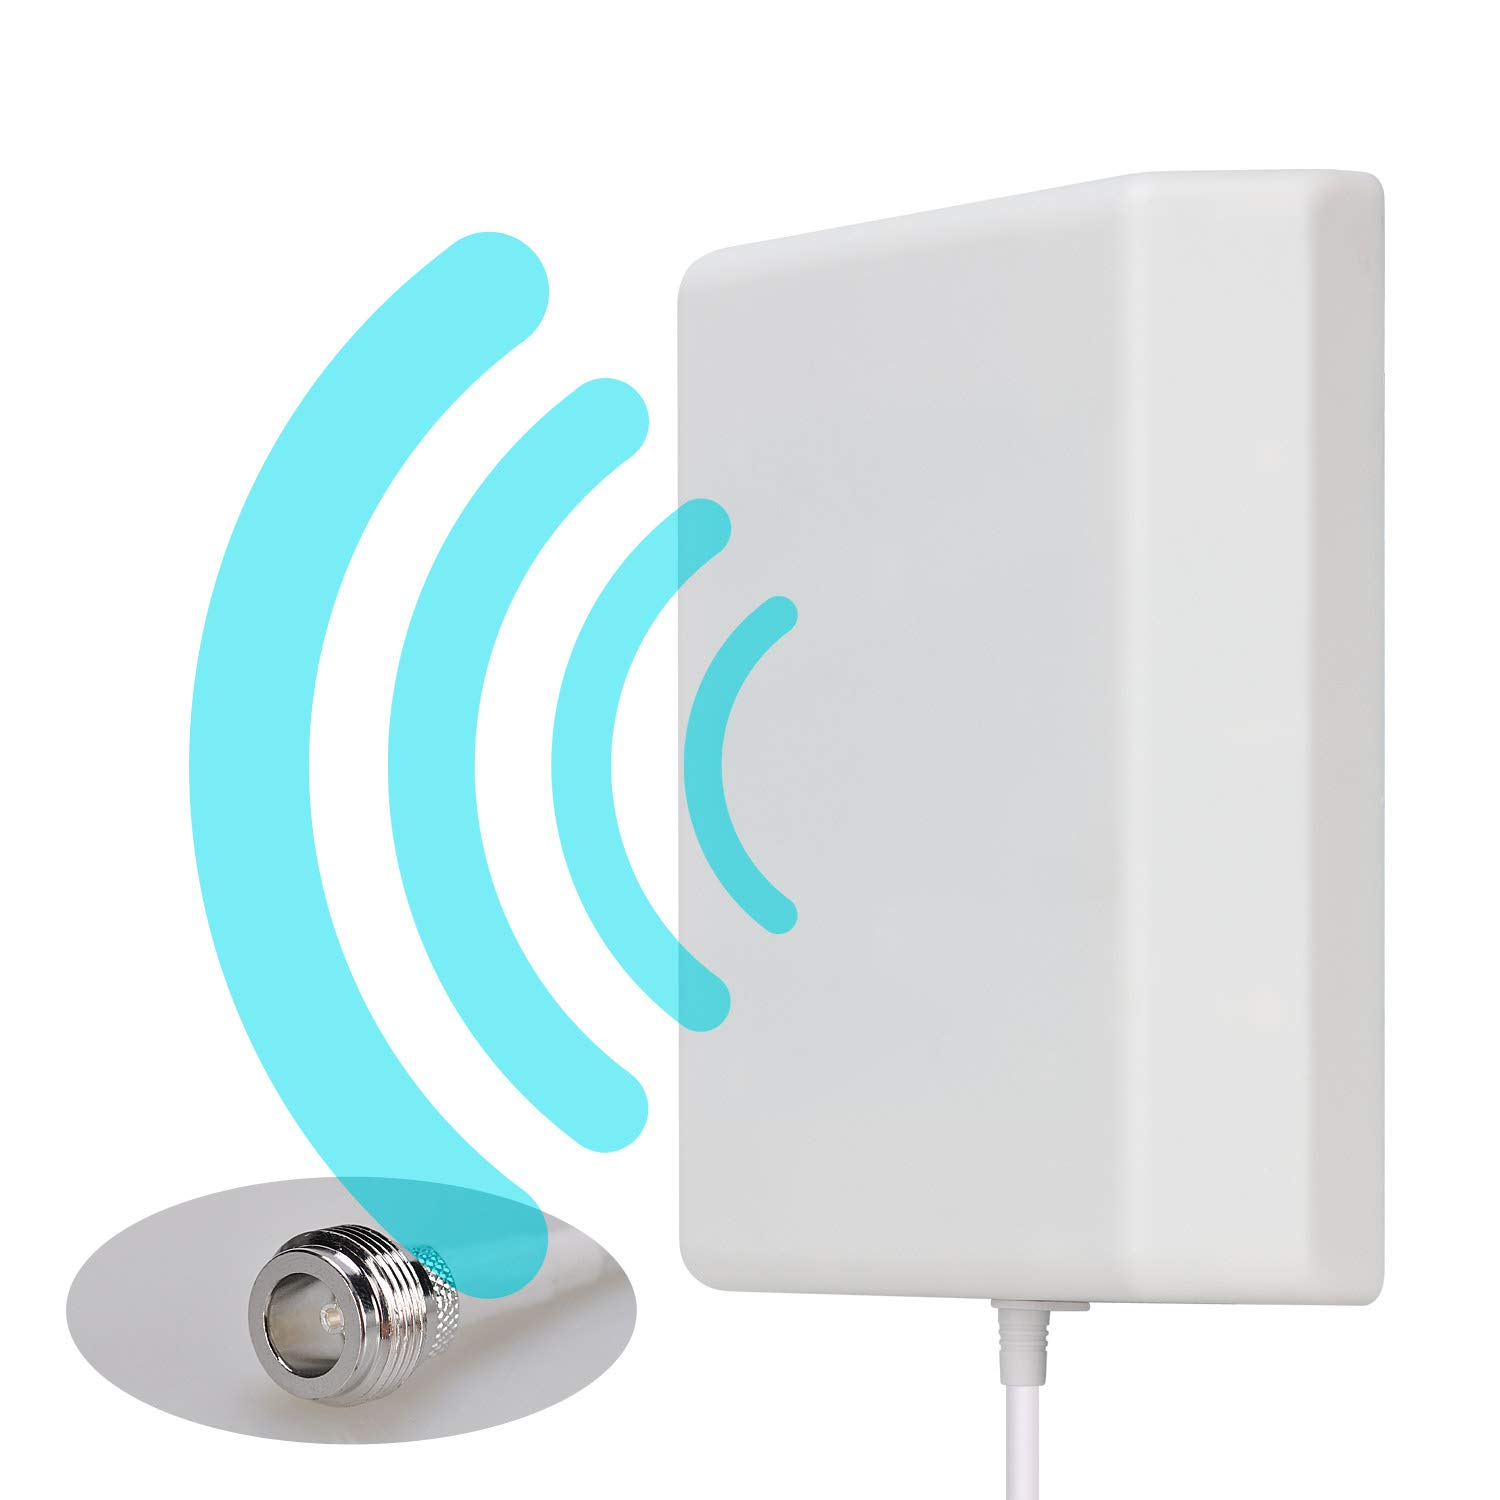 Lysignal Outdoor/Indoor Wall Mount Directional Panel Antenna 698 to 2700MHz 9dBi for Mobile Signal Booster by Lysignal